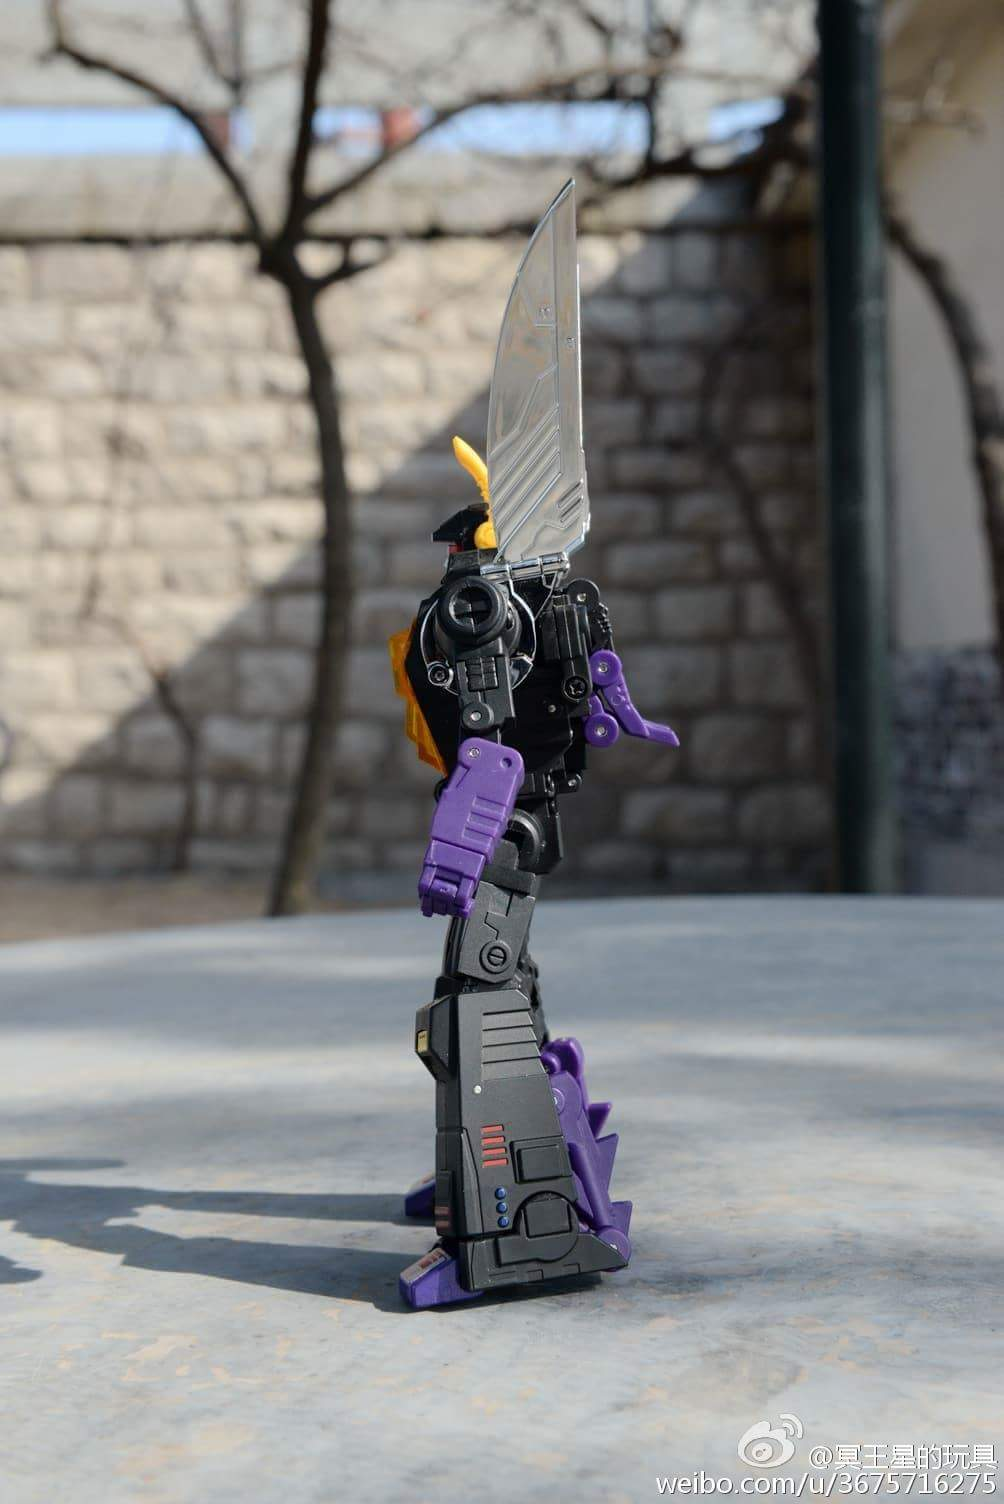 [Fanstoys] Produit Tiers - Jouet FT-12 Grenadier / FT-13 Mercenary / FT-14 Forager - aka Insecticons - Page 3 BMKQPOaG